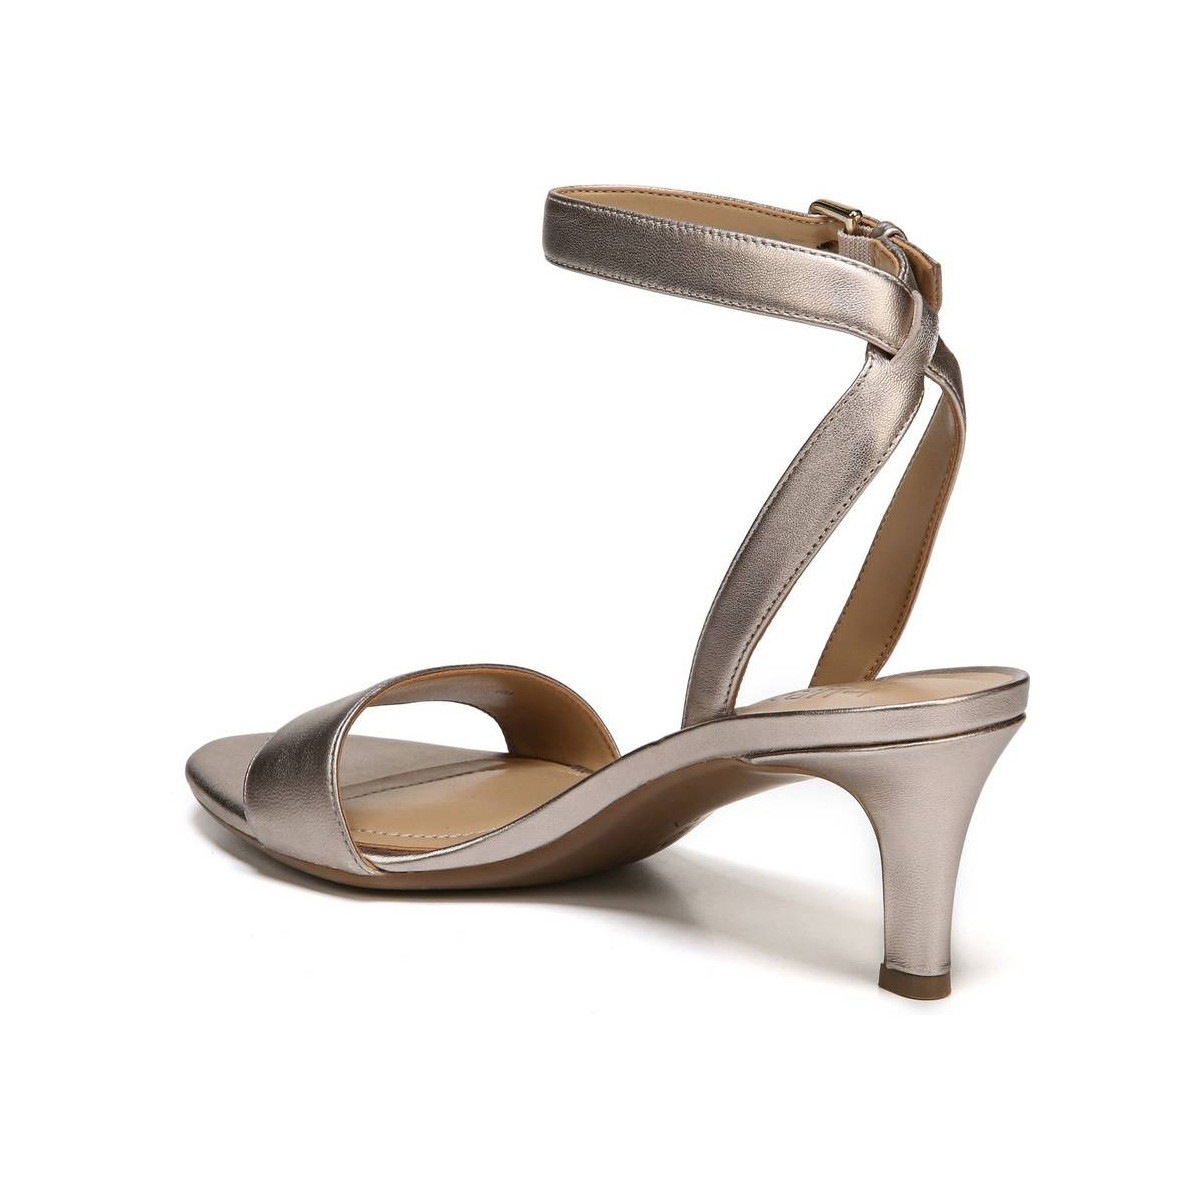 Naturalizer Tinda Champagne Sandals Women